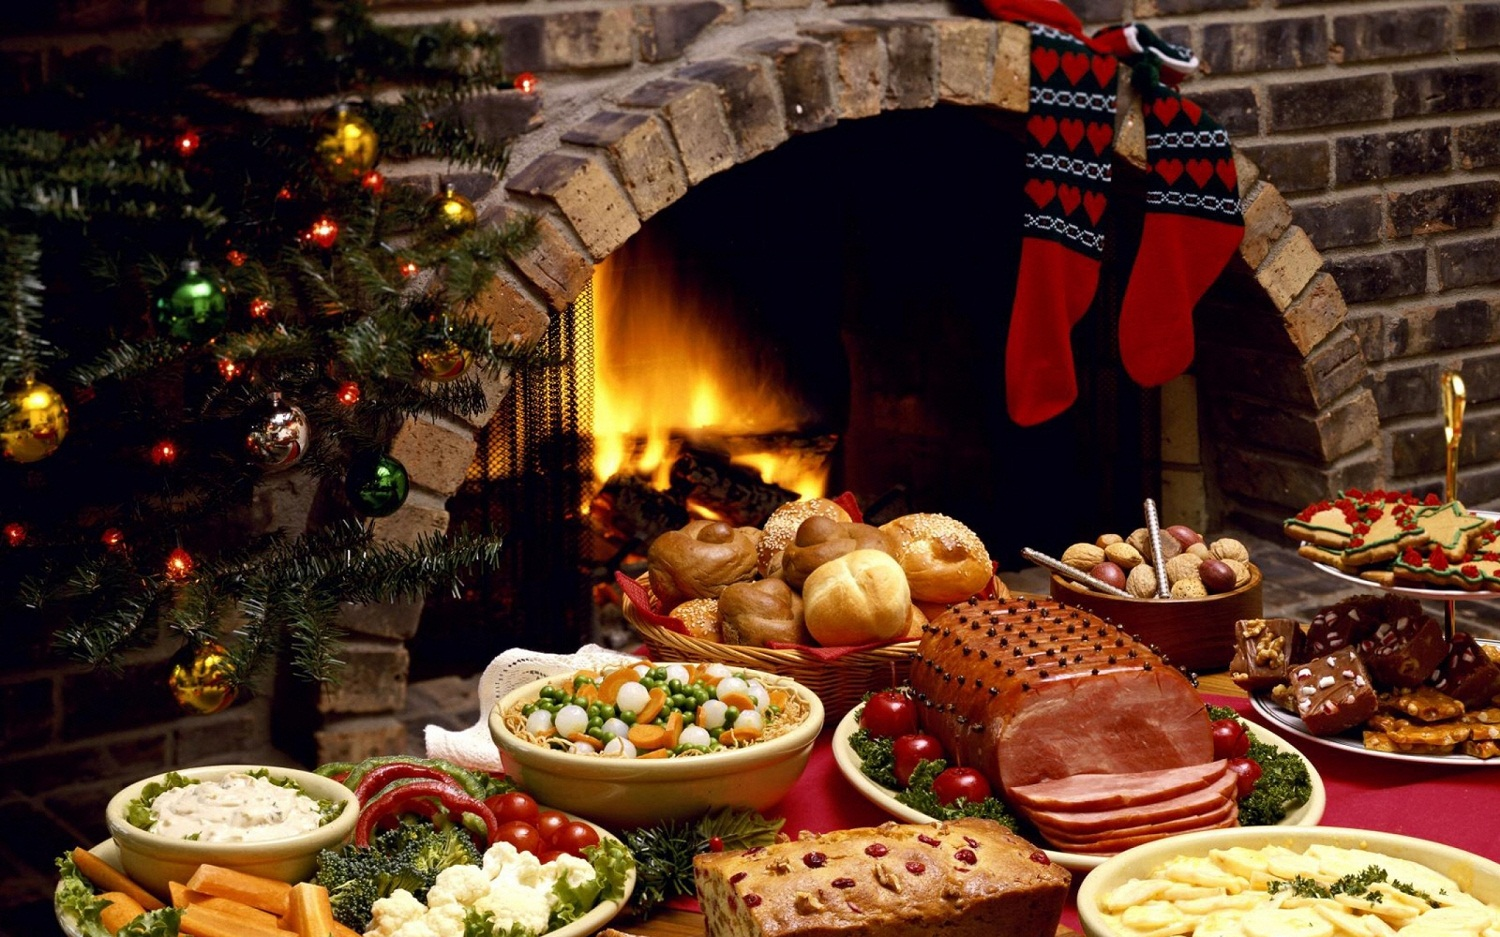 food_christmas_fireplace_1600x1200_wallpaper_Wallpaper_2560x1600_www.wall321.com_